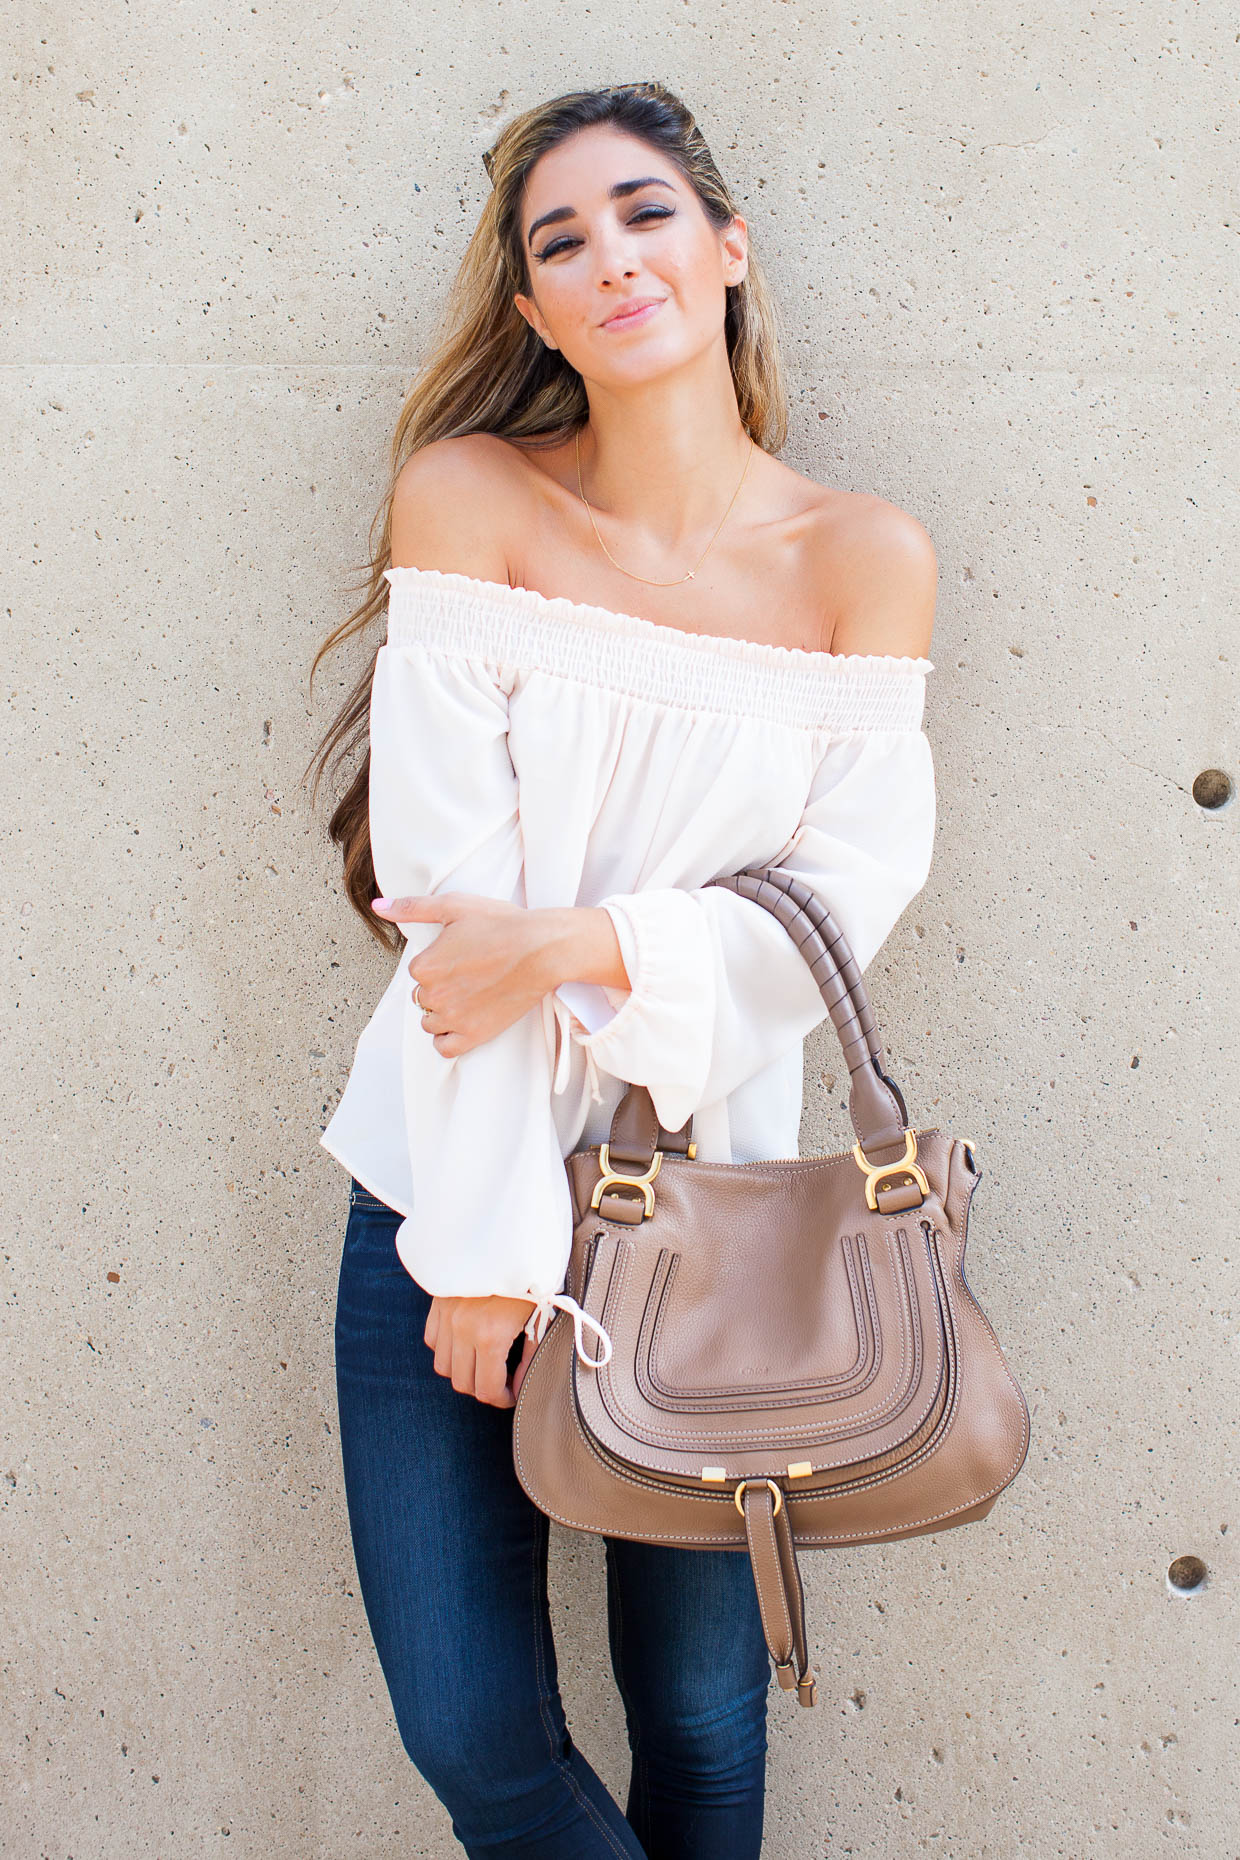 The Darling Detail is wearing a Chelsea28 Off the Shoulder Top and rag & bone/JEAN 'The Skinny' Skinny Jeans (Dearborn), Westward Leaning Flower 1 Sunglasses, and is holding a Chloe 'Marcie - Small' Leather Satchel.